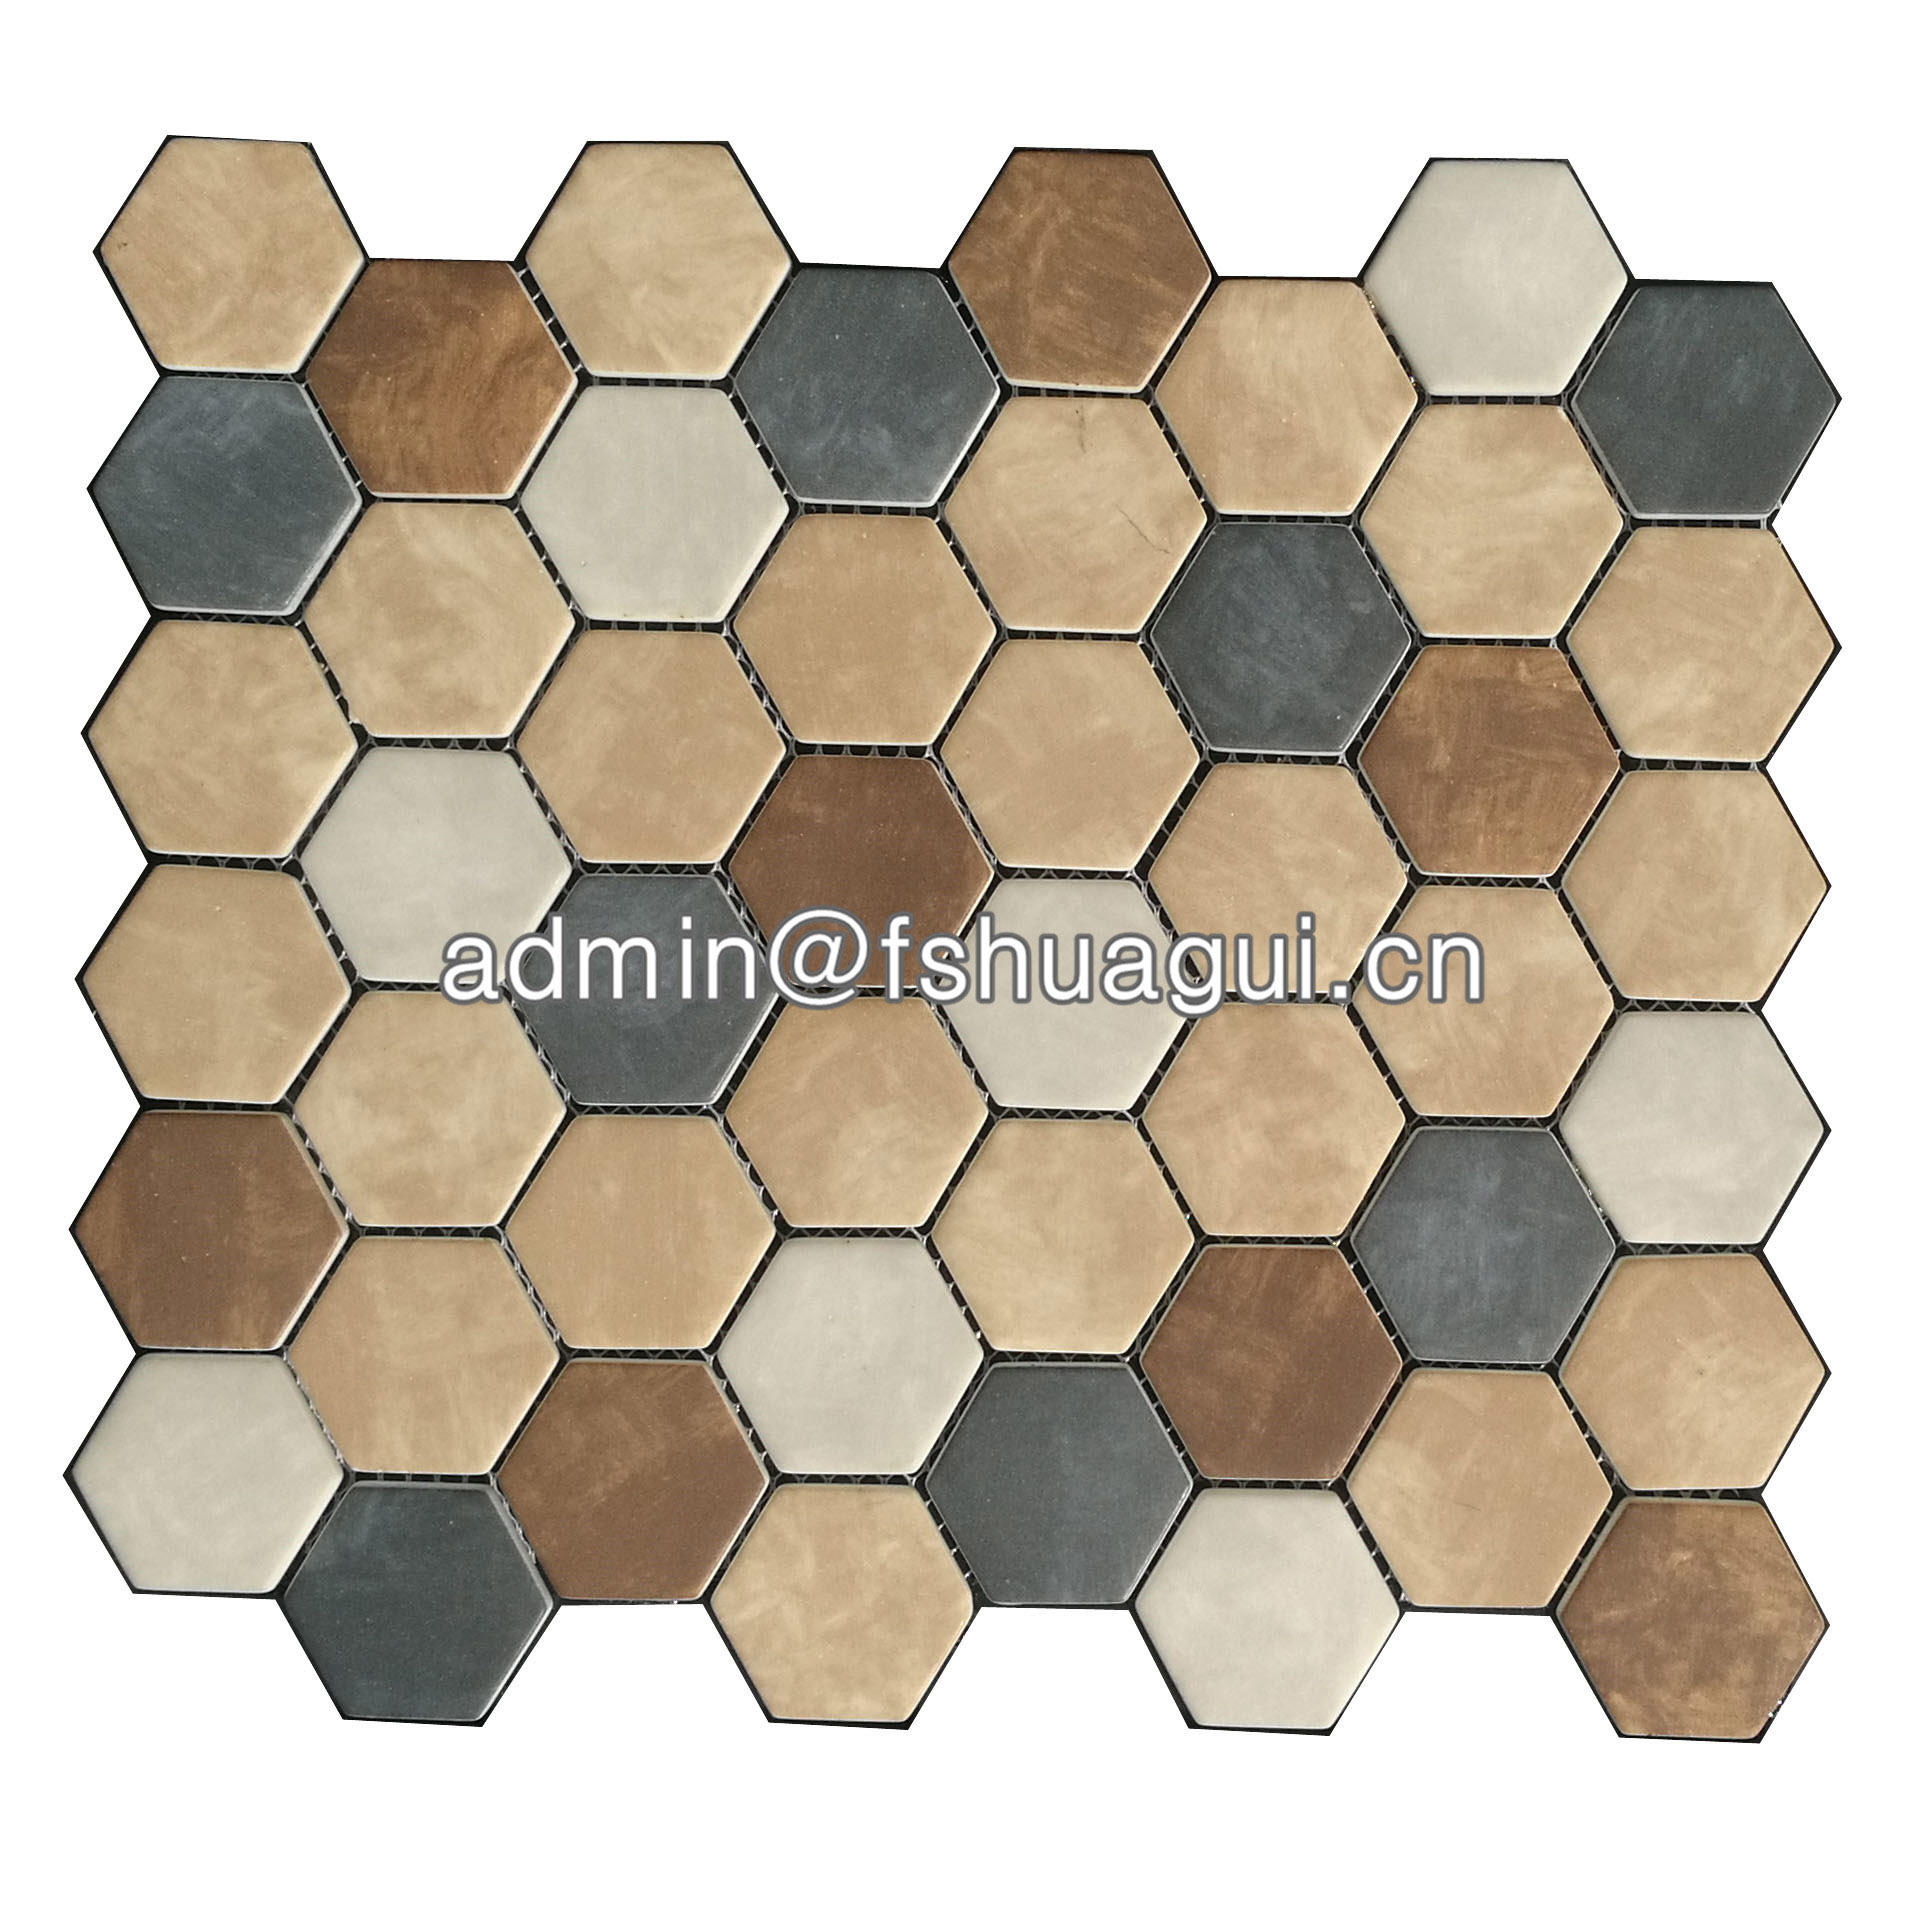 Brown mixed hexagon mosaic tiles vinyl flooring South Africa